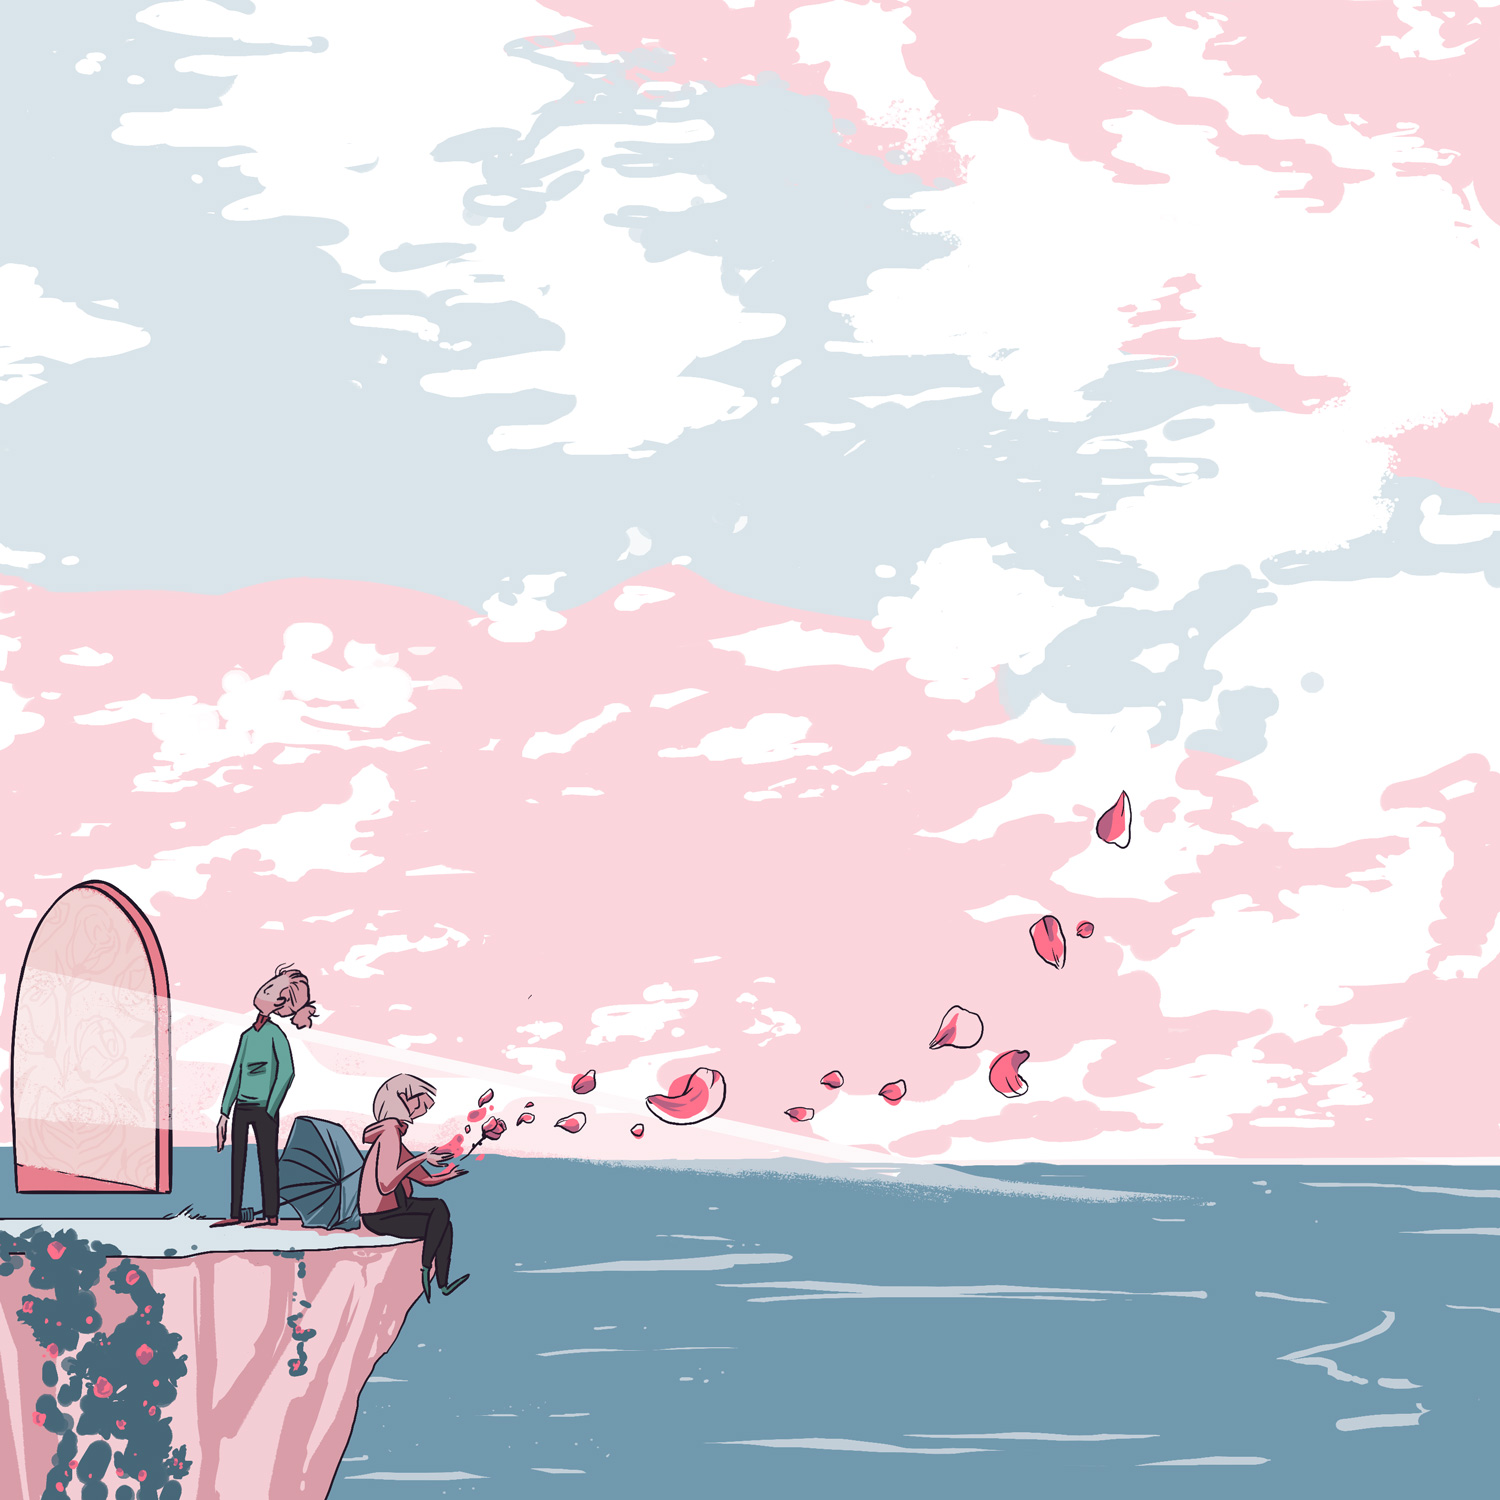 Digitally rendered illustration of two figures on an ocean overlook and a mysterious door, with a wide overhead sky in pink and pale blue.